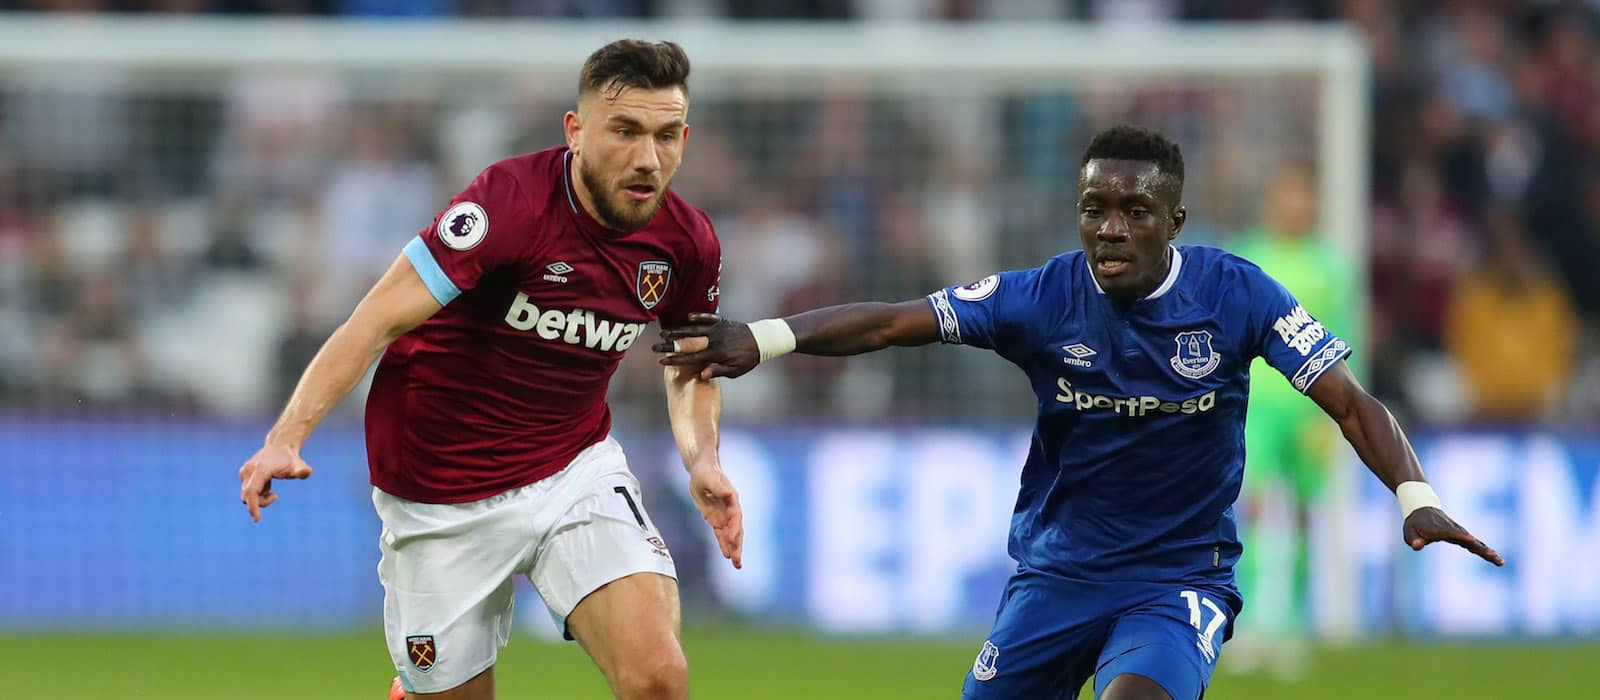 Manchester United want to sign Everton midfielder Idrissa Gueye – report